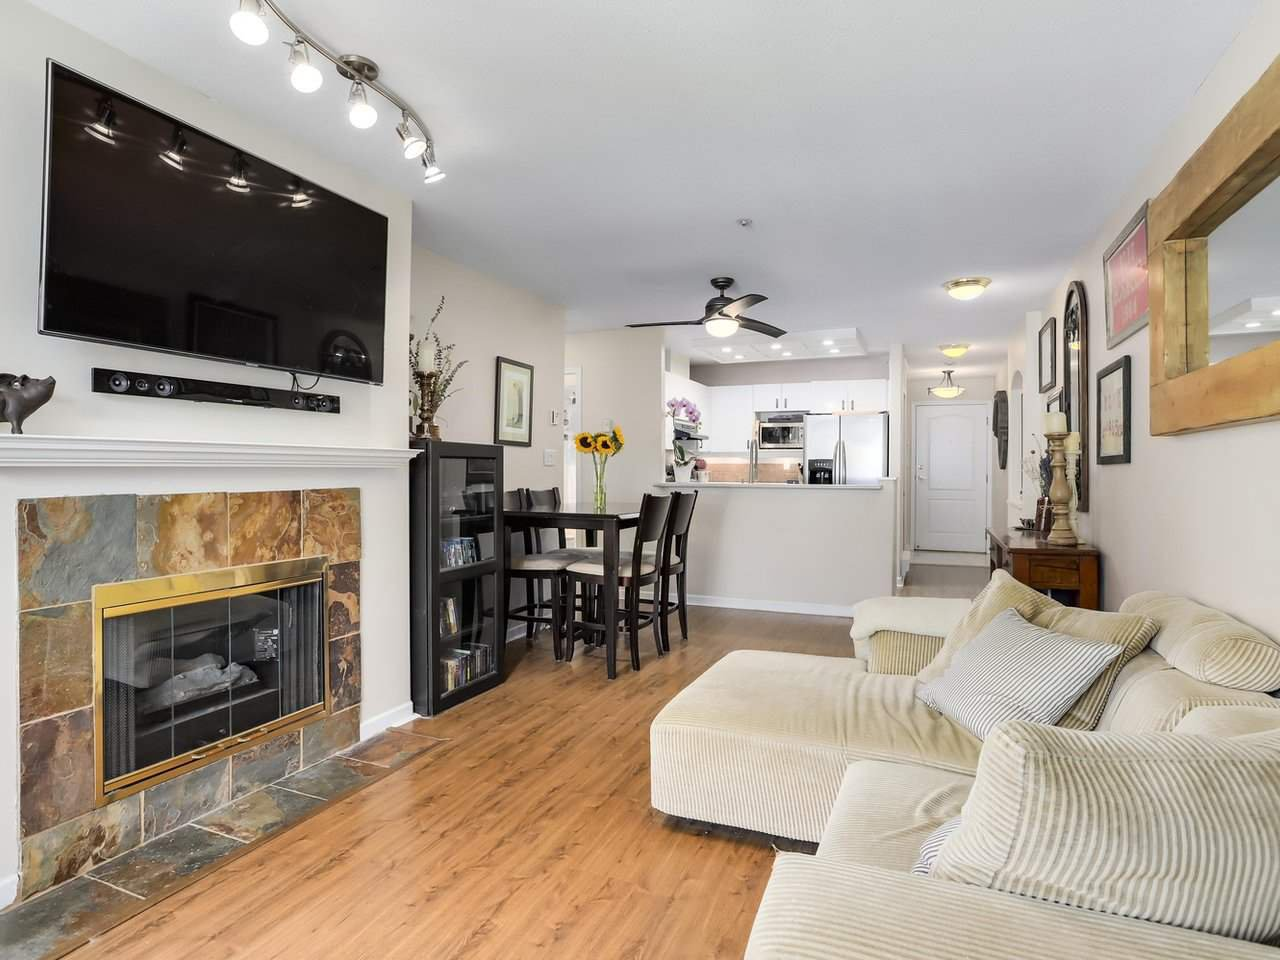 """Main Photo: 404 6745 STATION HILL Court in Burnaby: South Slope Condo for sale in """"SALTSPRING"""" (Burnaby South)  : MLS®# R2272238"""